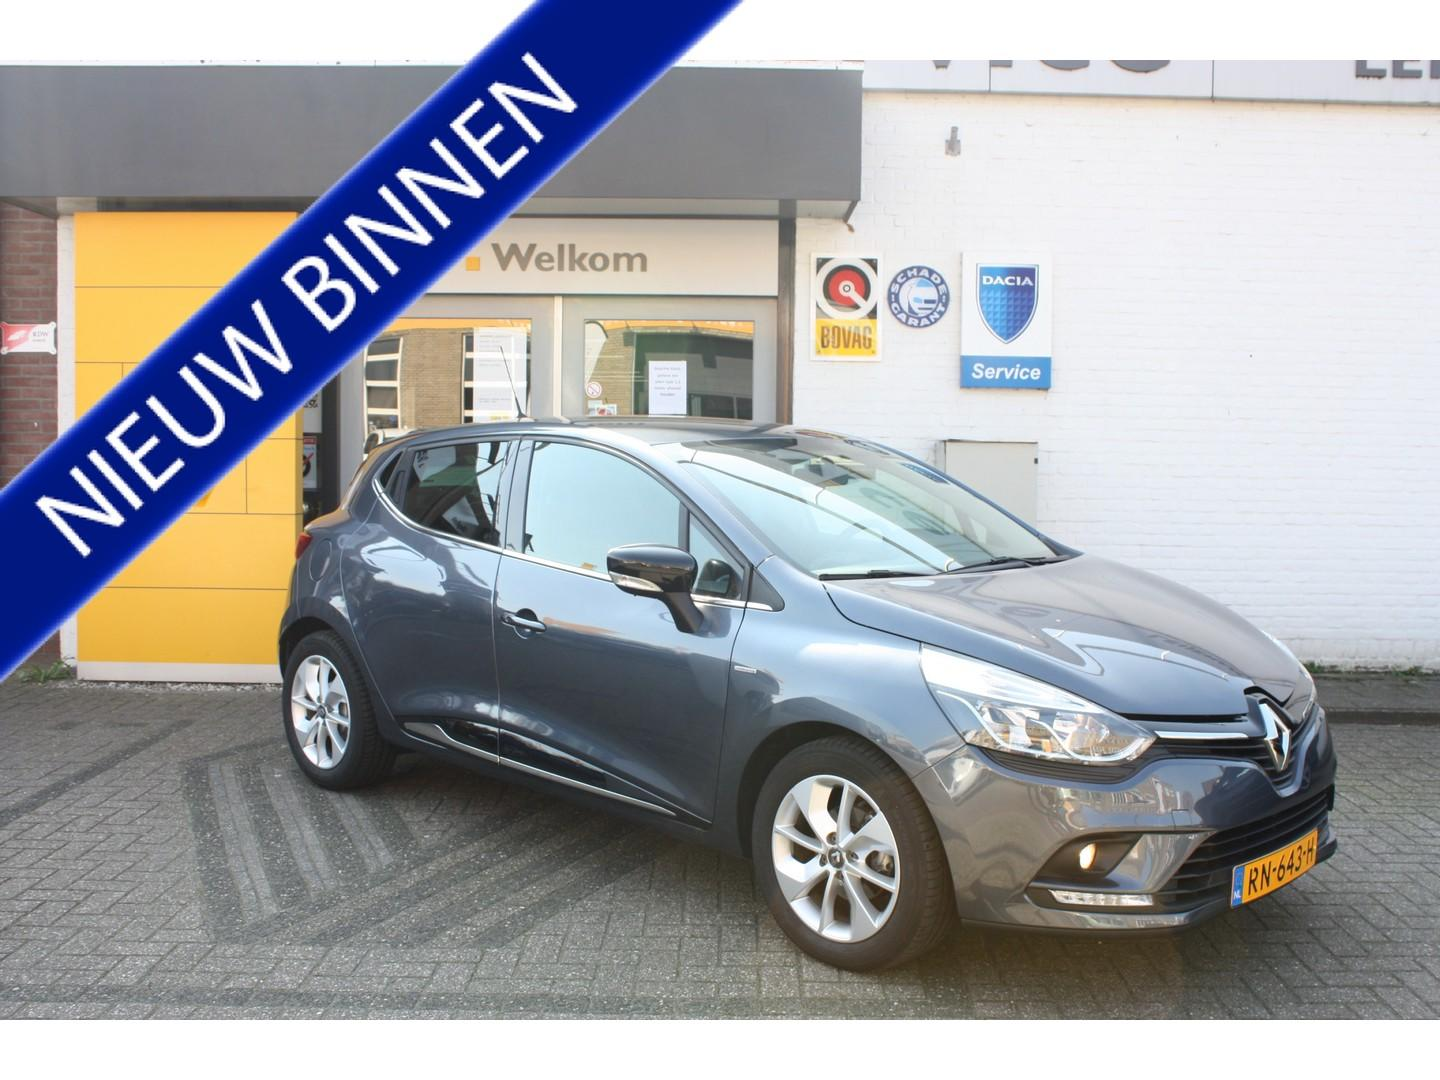 Renault Clio Iv hb tce 90 limited, nl auto